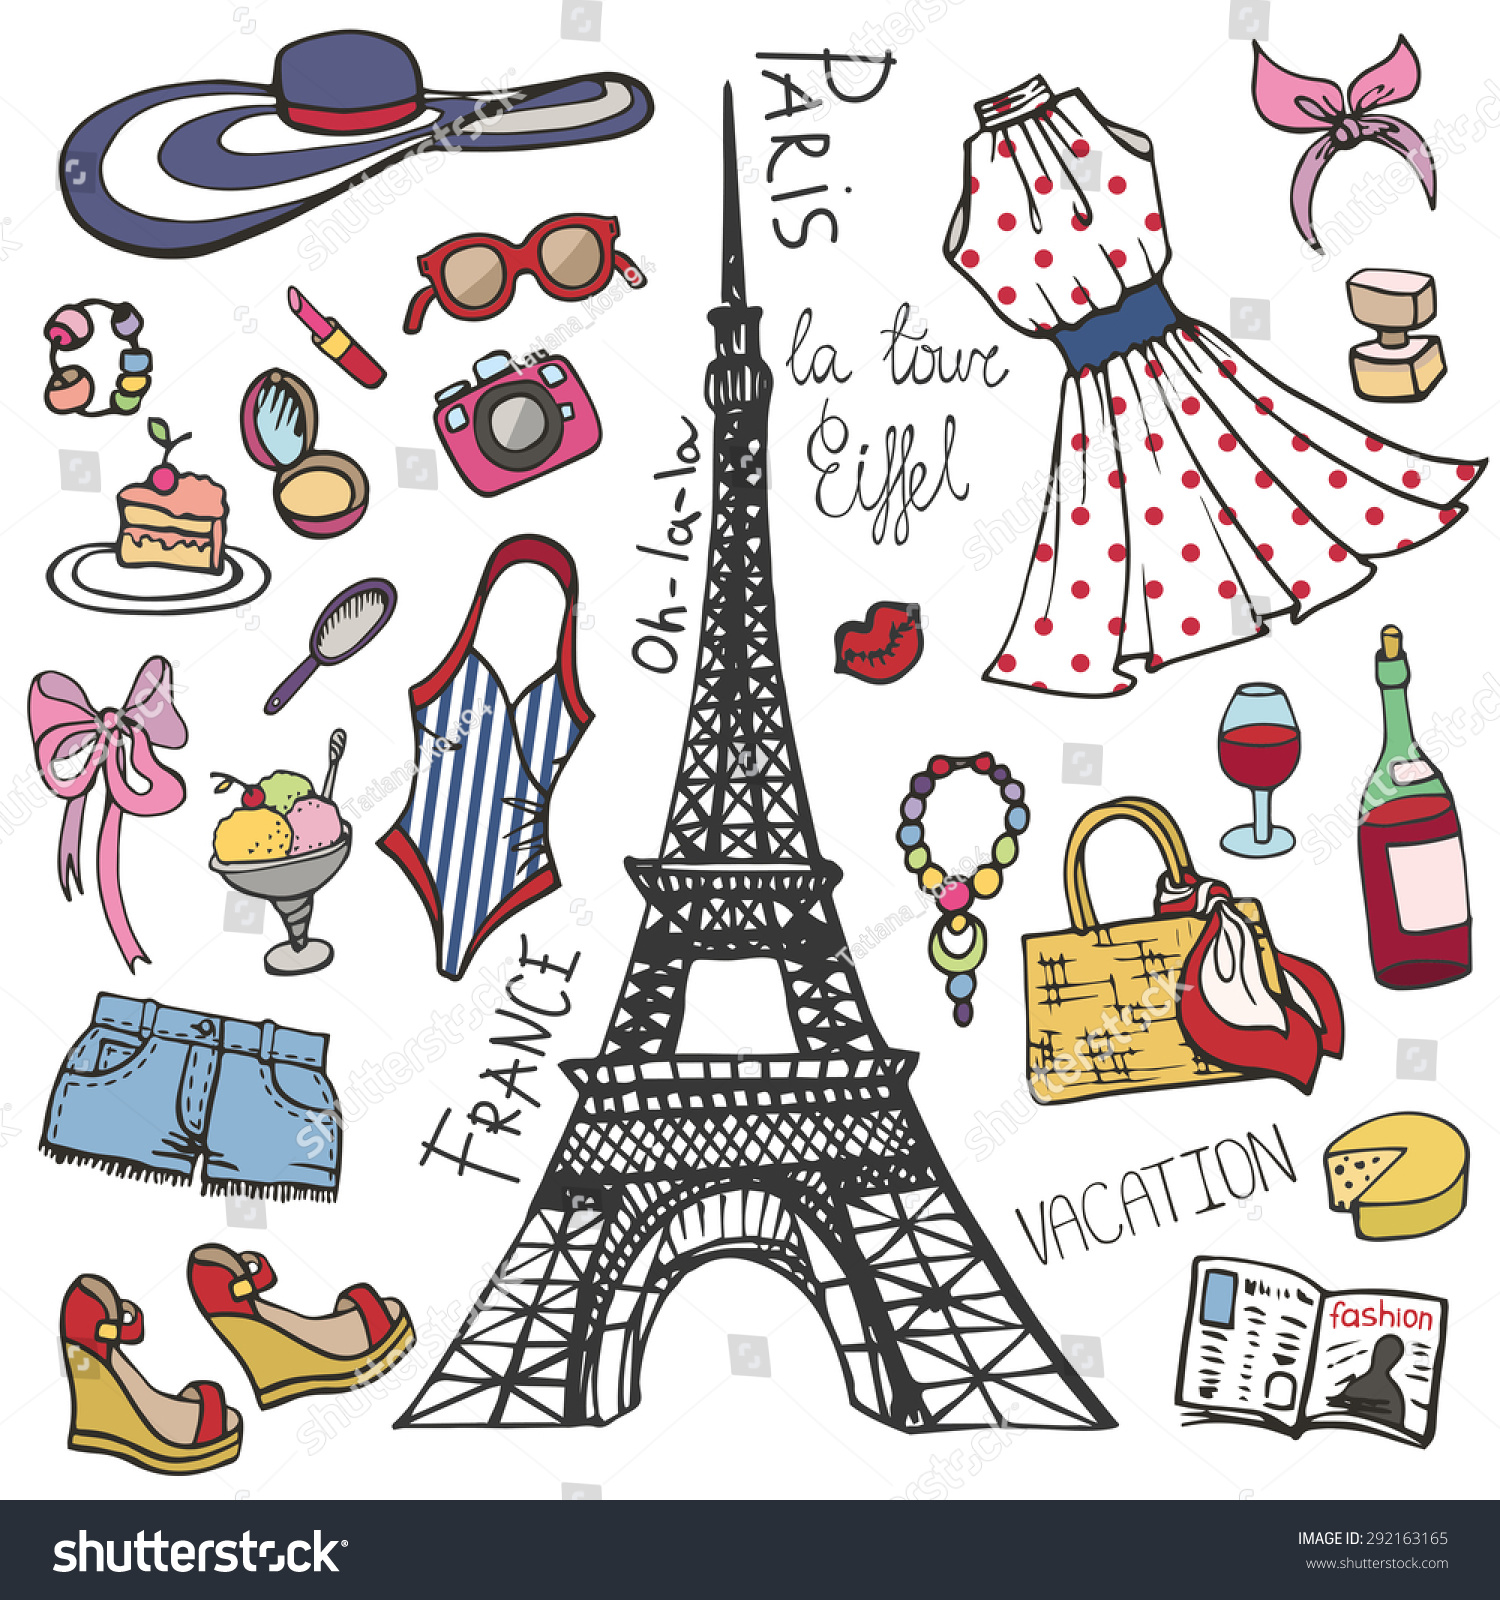 Fashion Show Meaning In French